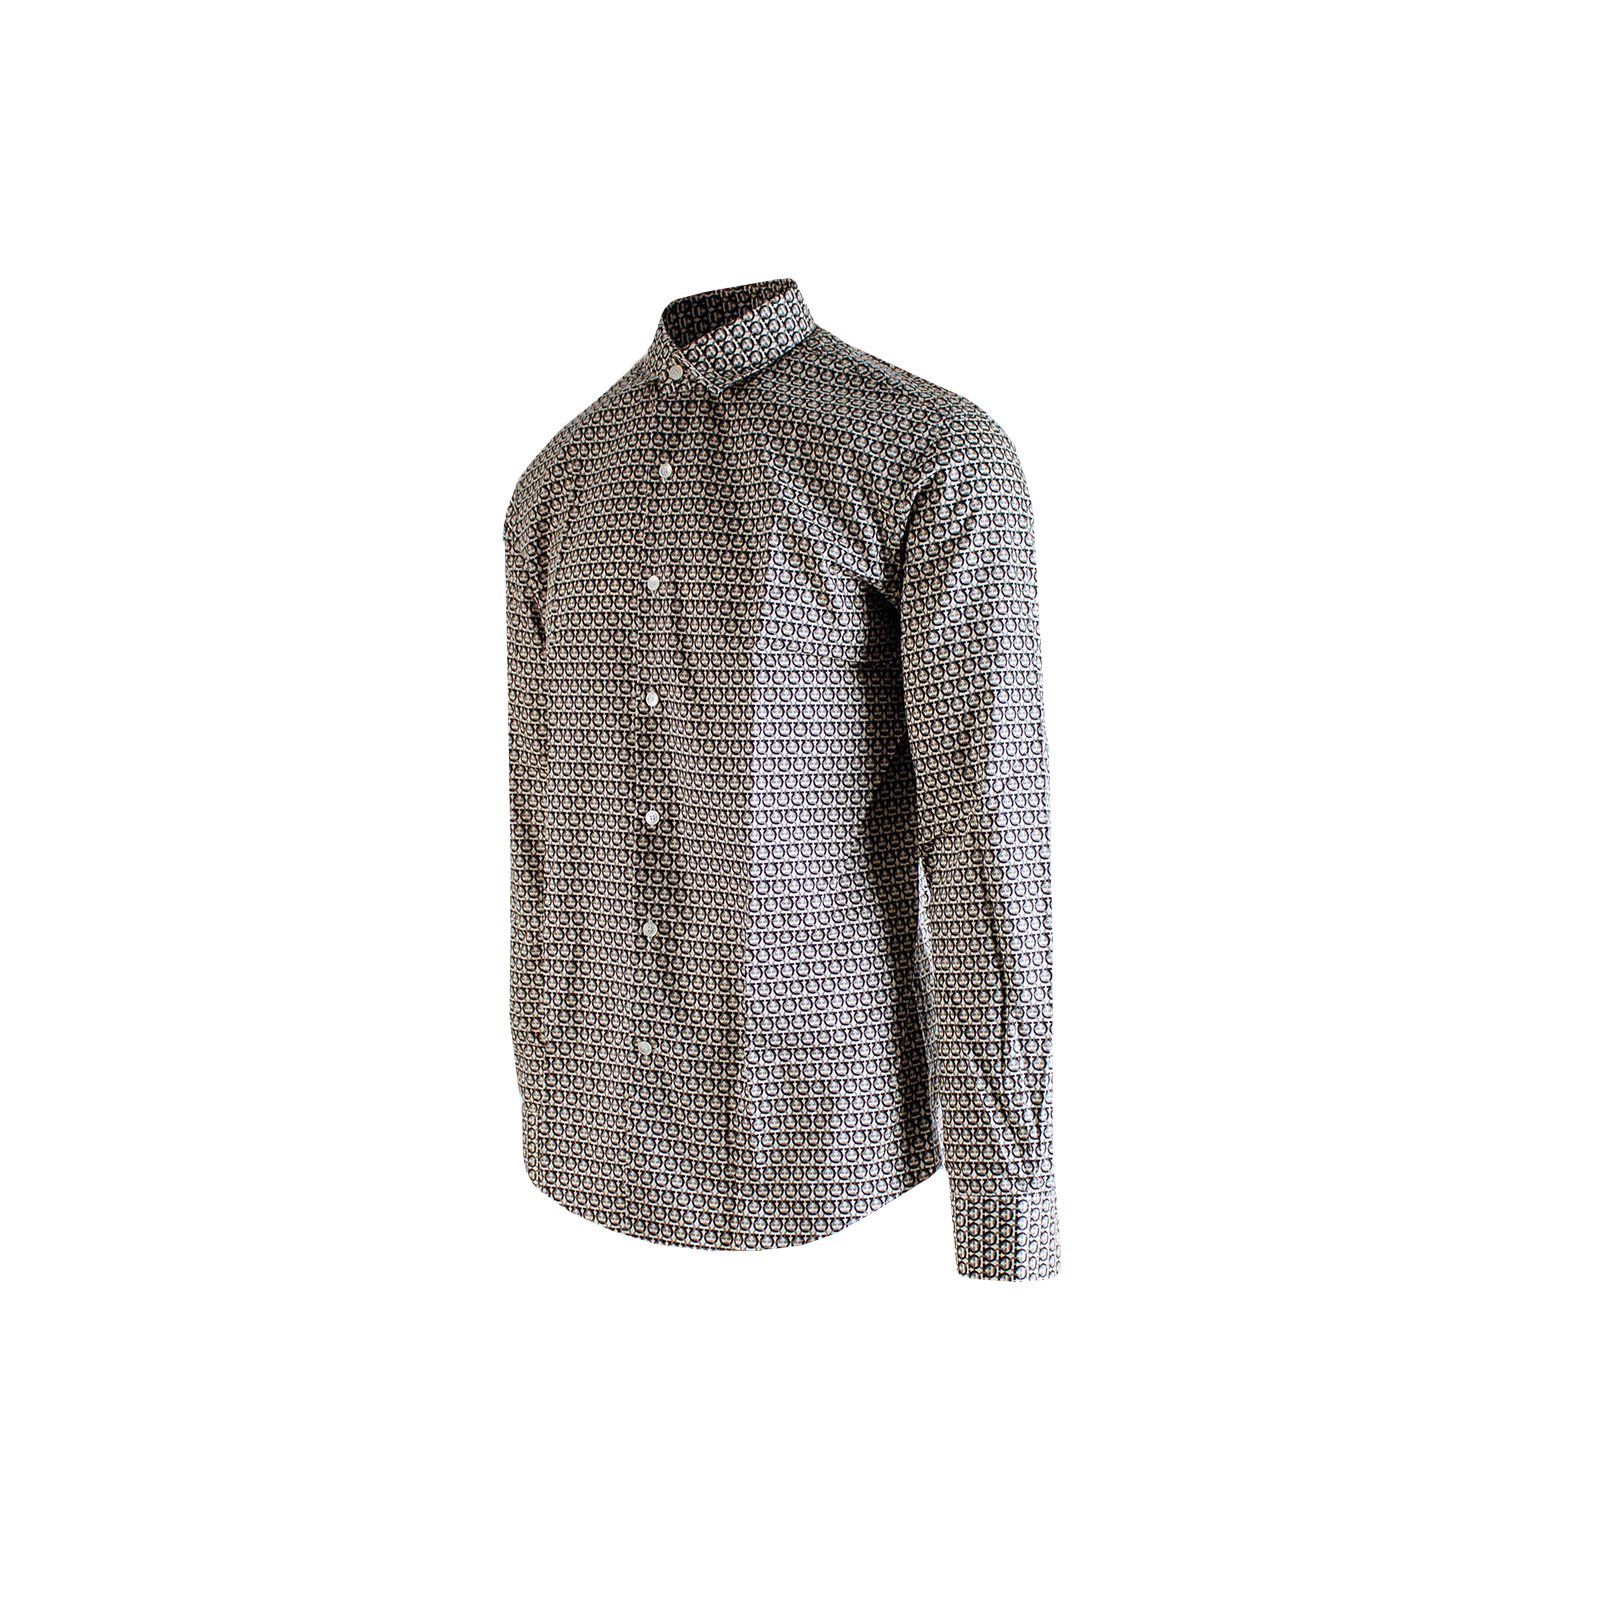 Salvatore Ferregamo Shirt